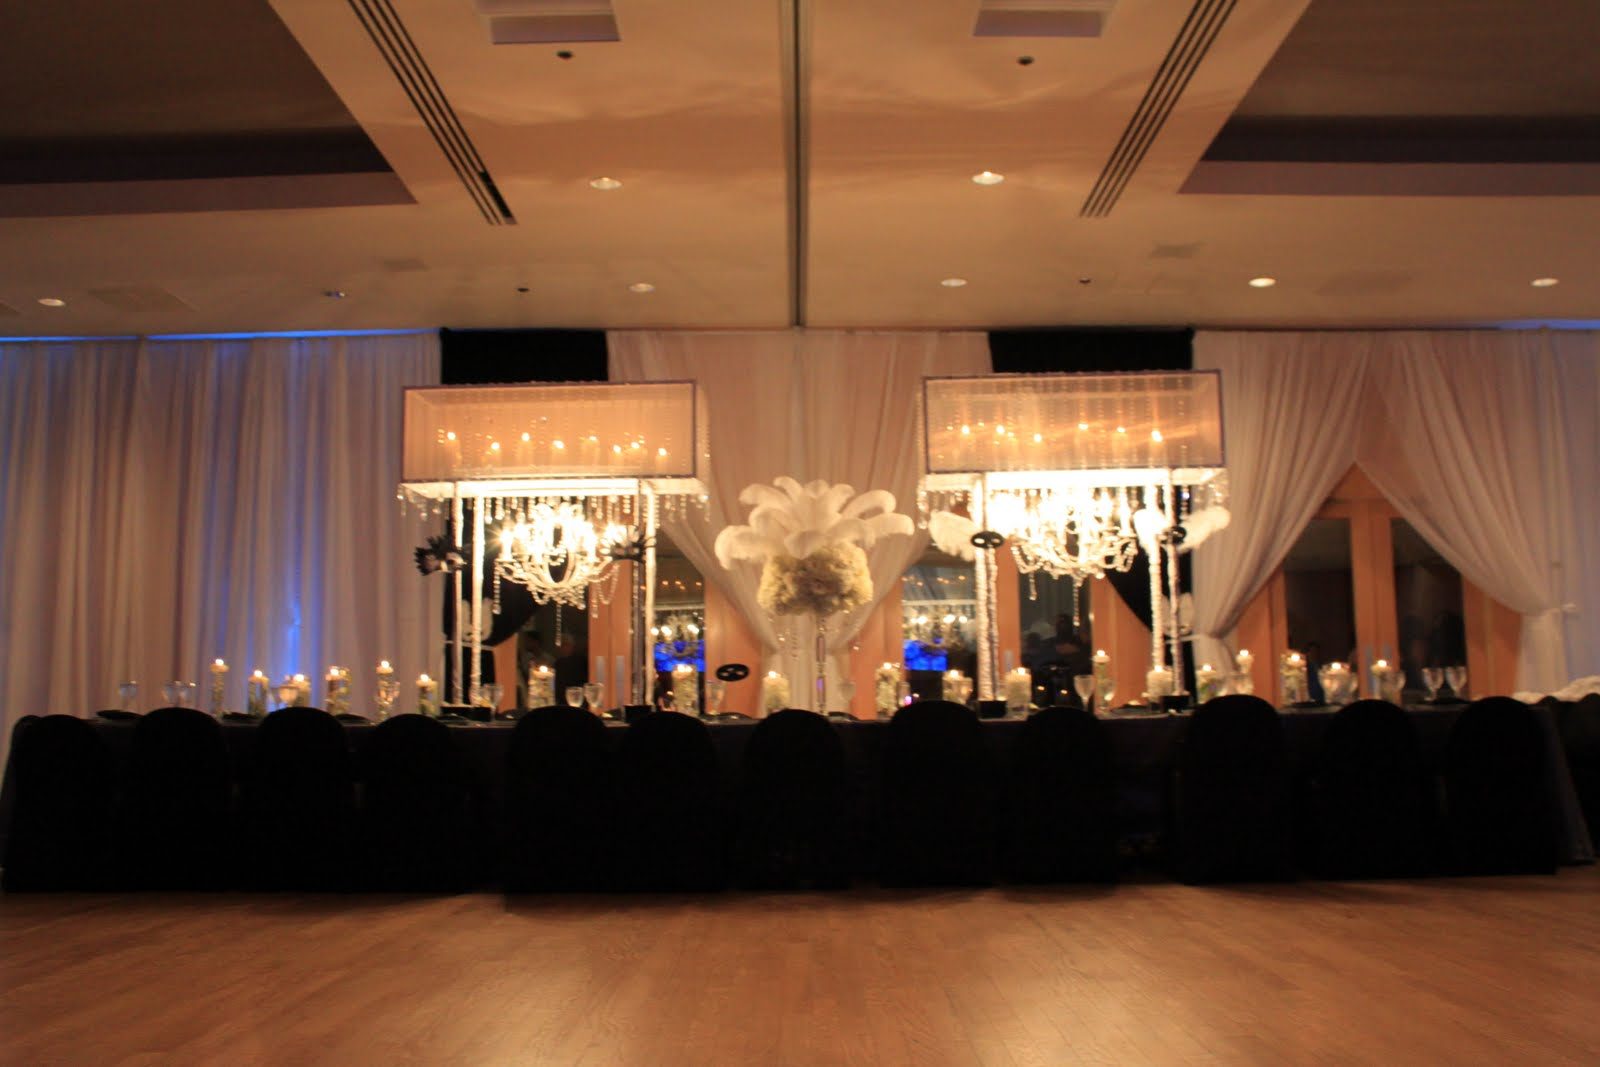 weddings florist washington dc - www.davinciflorist.us: bar ...